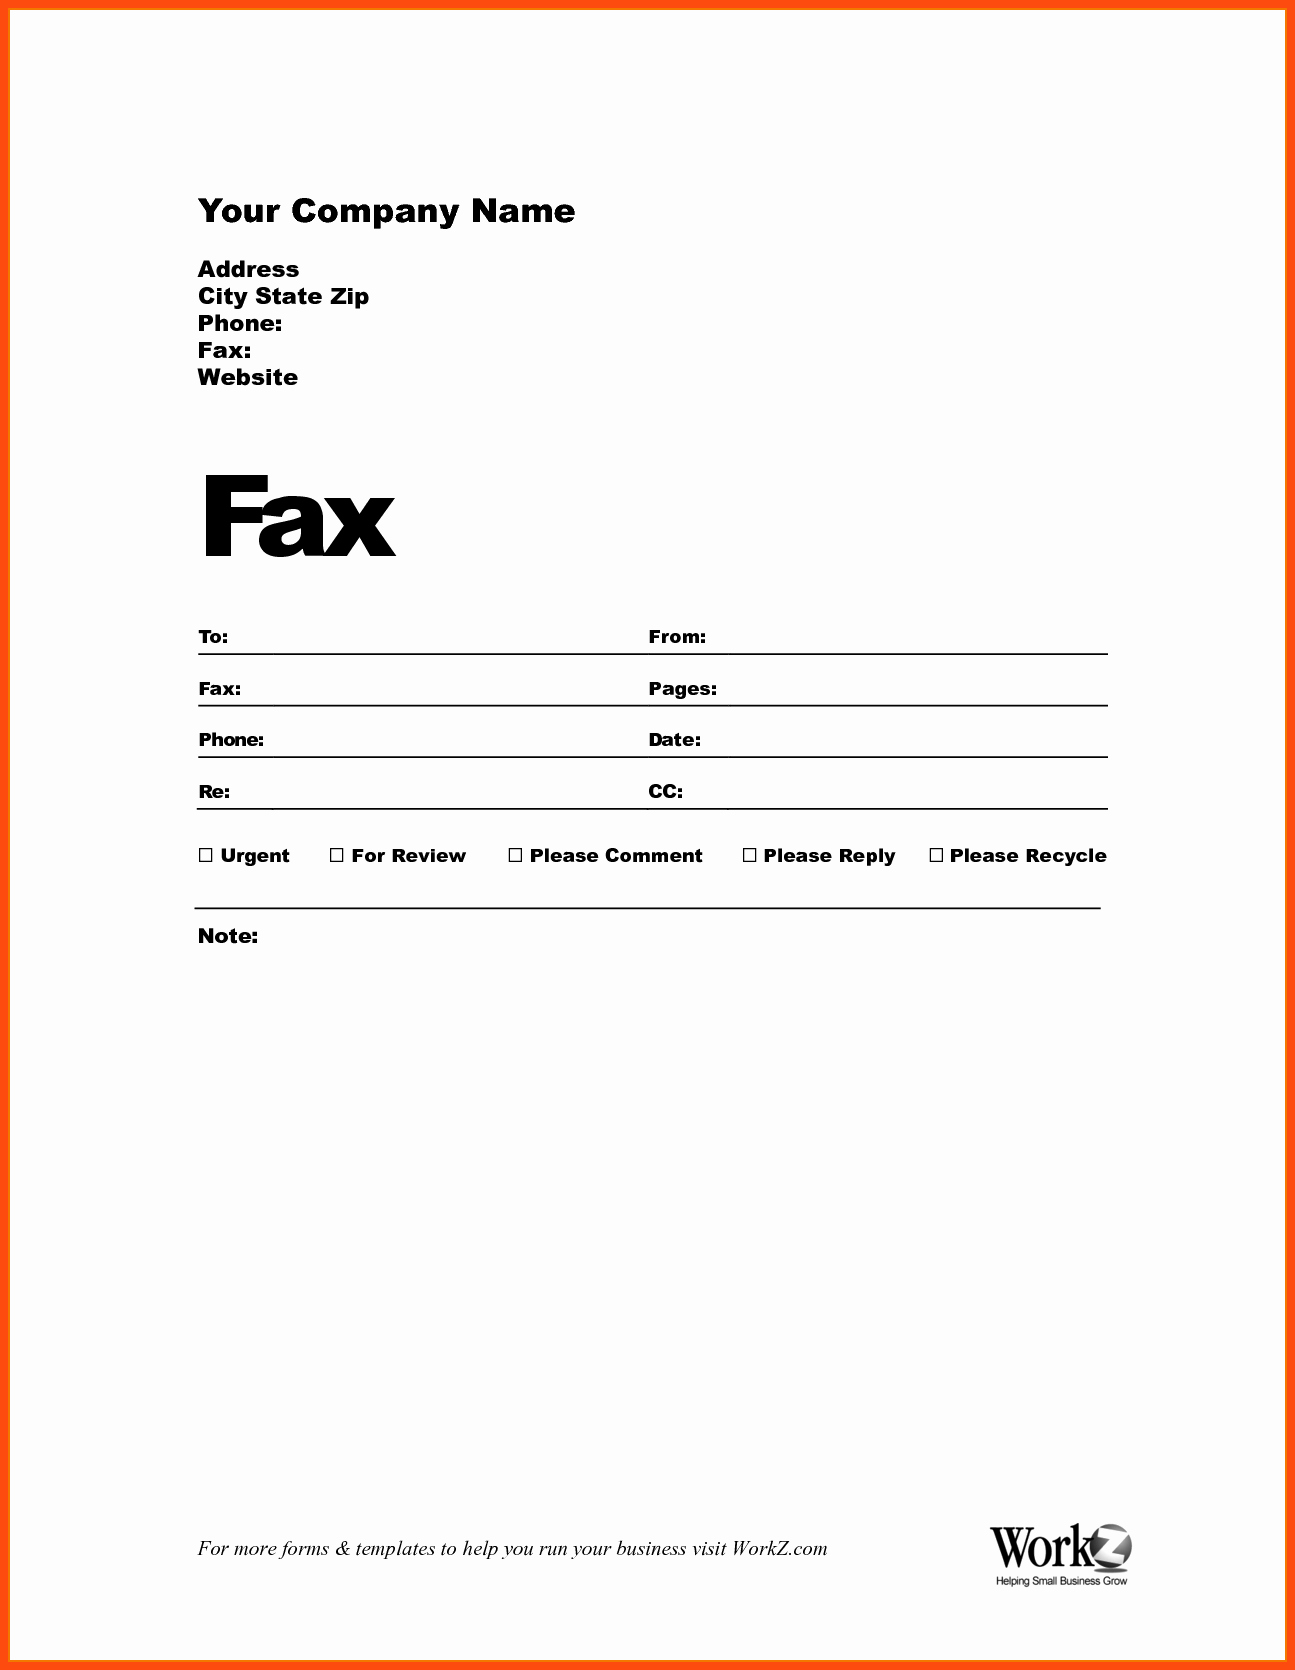 Printable Fax Cover Sheets Pdf Inspirational How to Fill Out A Fax Cover Sheet